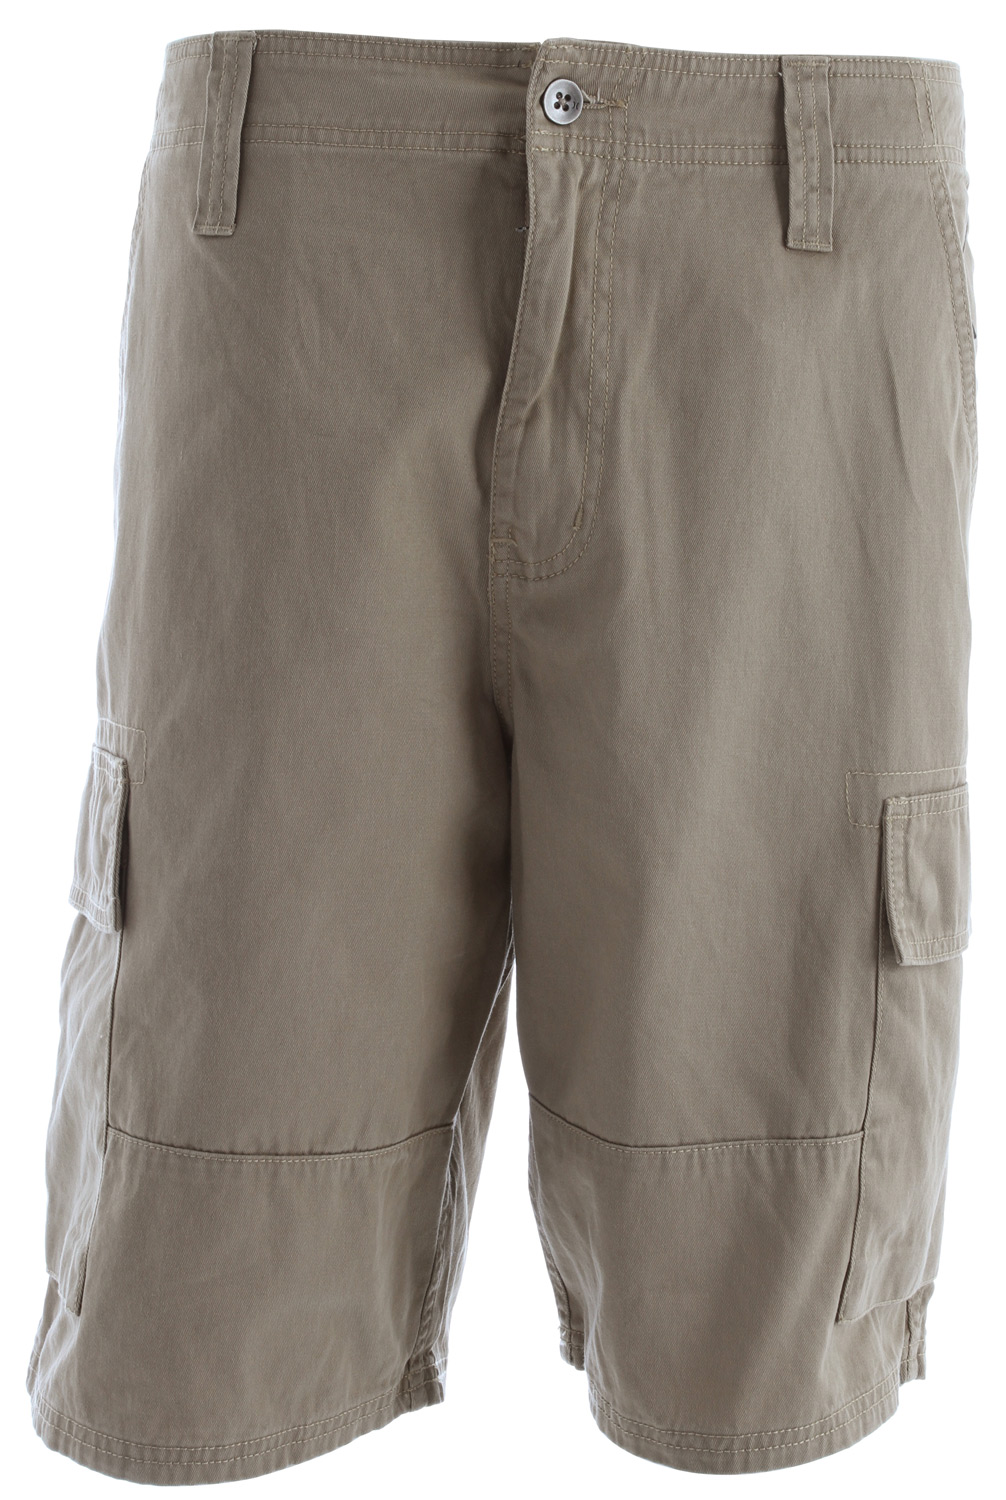 Surf Key Features of the Hurley Commander Cargo Shorts: Regular Fit 100% Cotton Regime fit, cargo pocket, military detail - $31.95